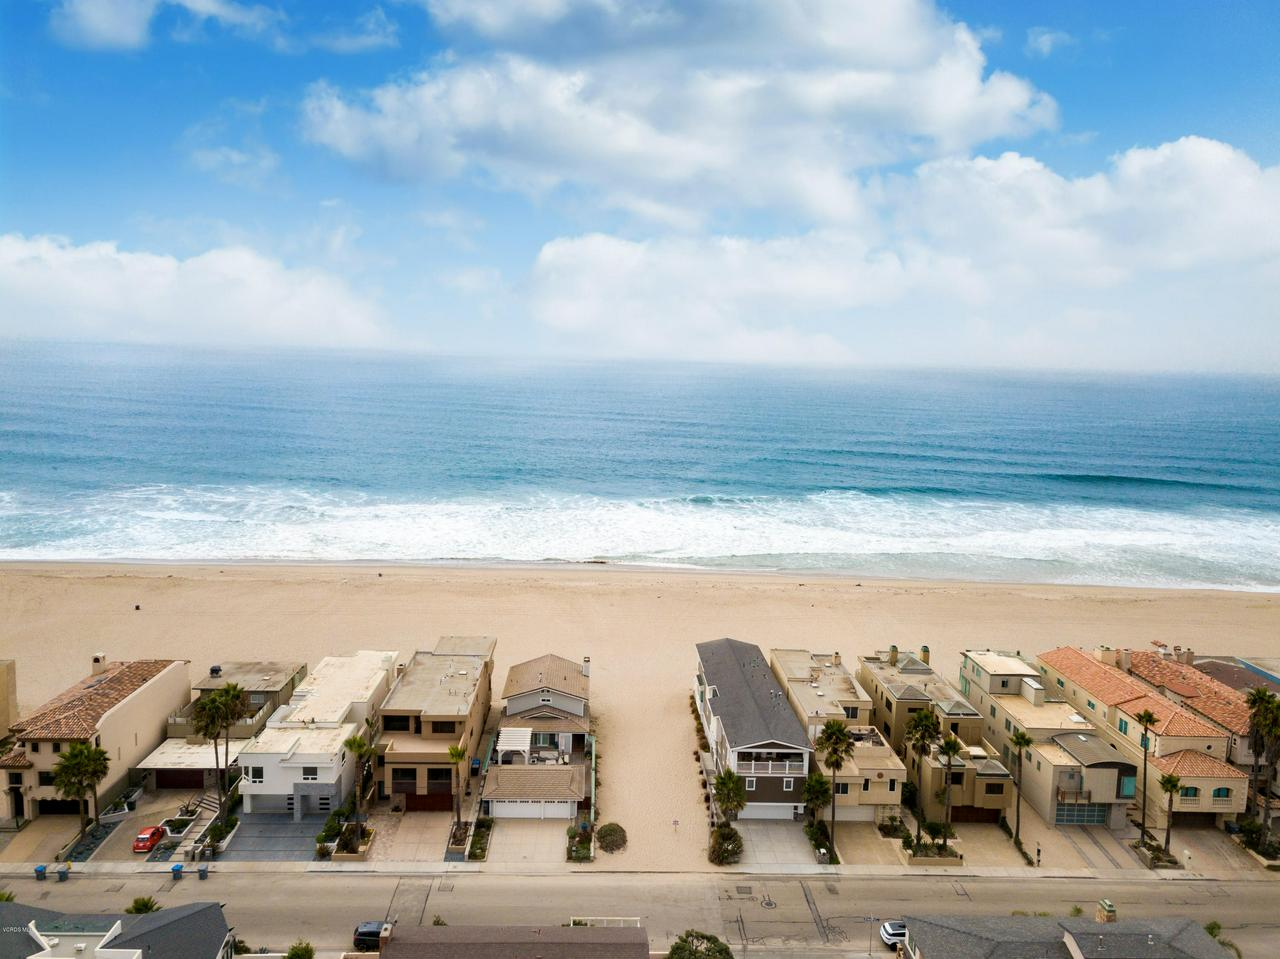 941 MANDALAY BEACH, Oxnard, CA 93035 - MBR--2